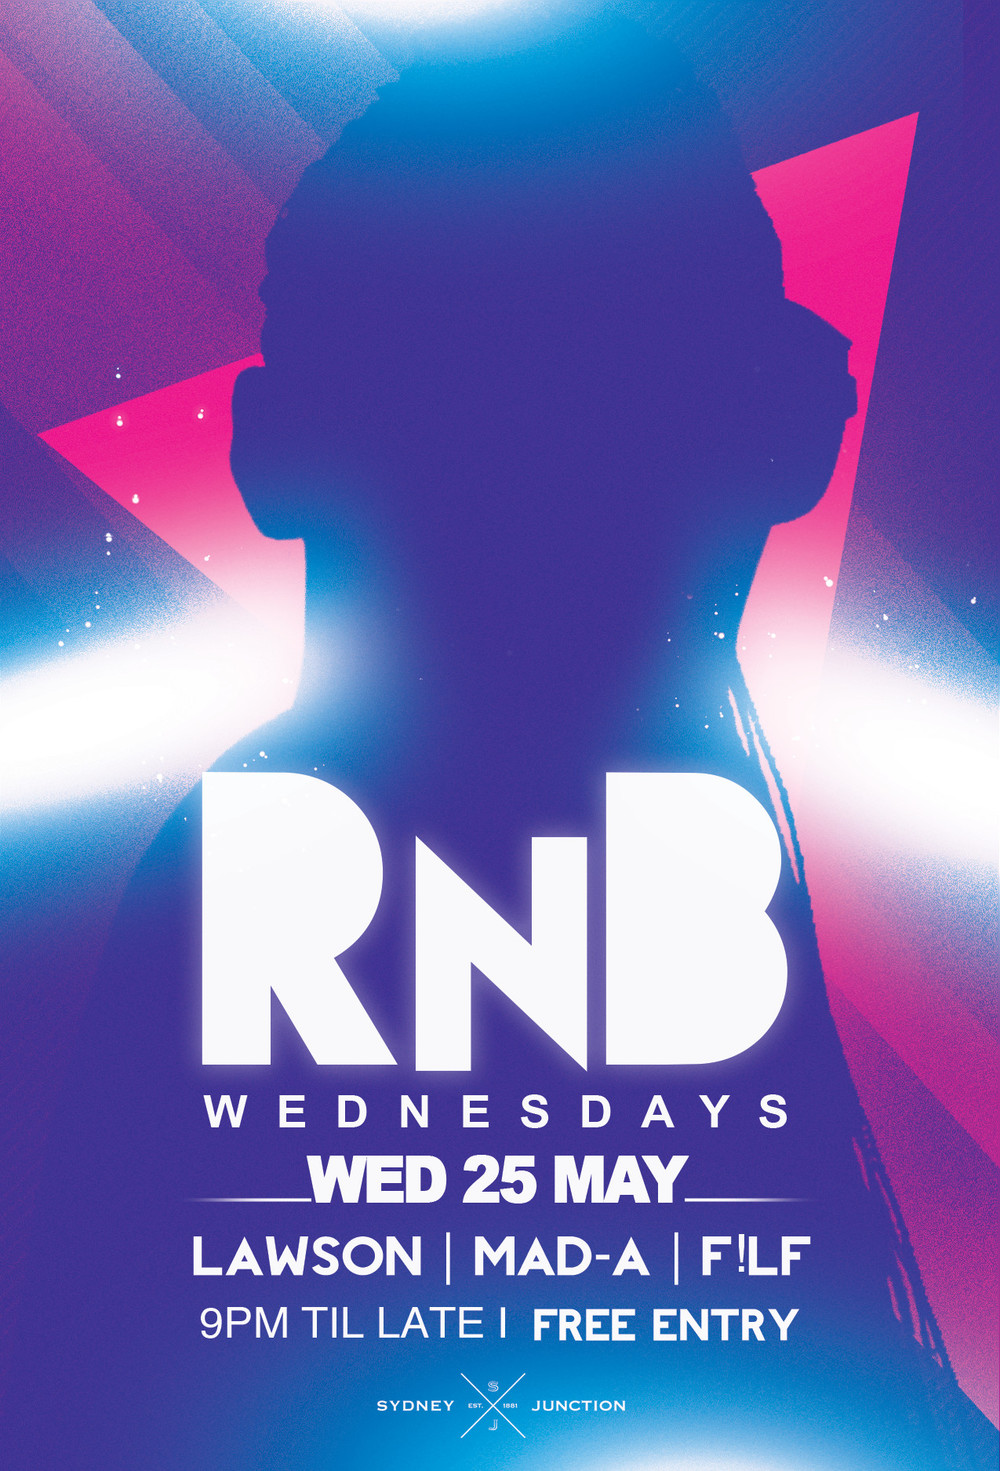 LIVE DJS: RnB WEDNESDAYS @9PM - 3AM GUEST DJS: LAWSON | MAD-A | F!ILF Join us at the all new Wednesday for Newcastle's hottest RnB Night. *** ALWAYS FREE ENTRY *** $4.50 Spirits, $4 Beers  ...Holy Moly its always a fun night.